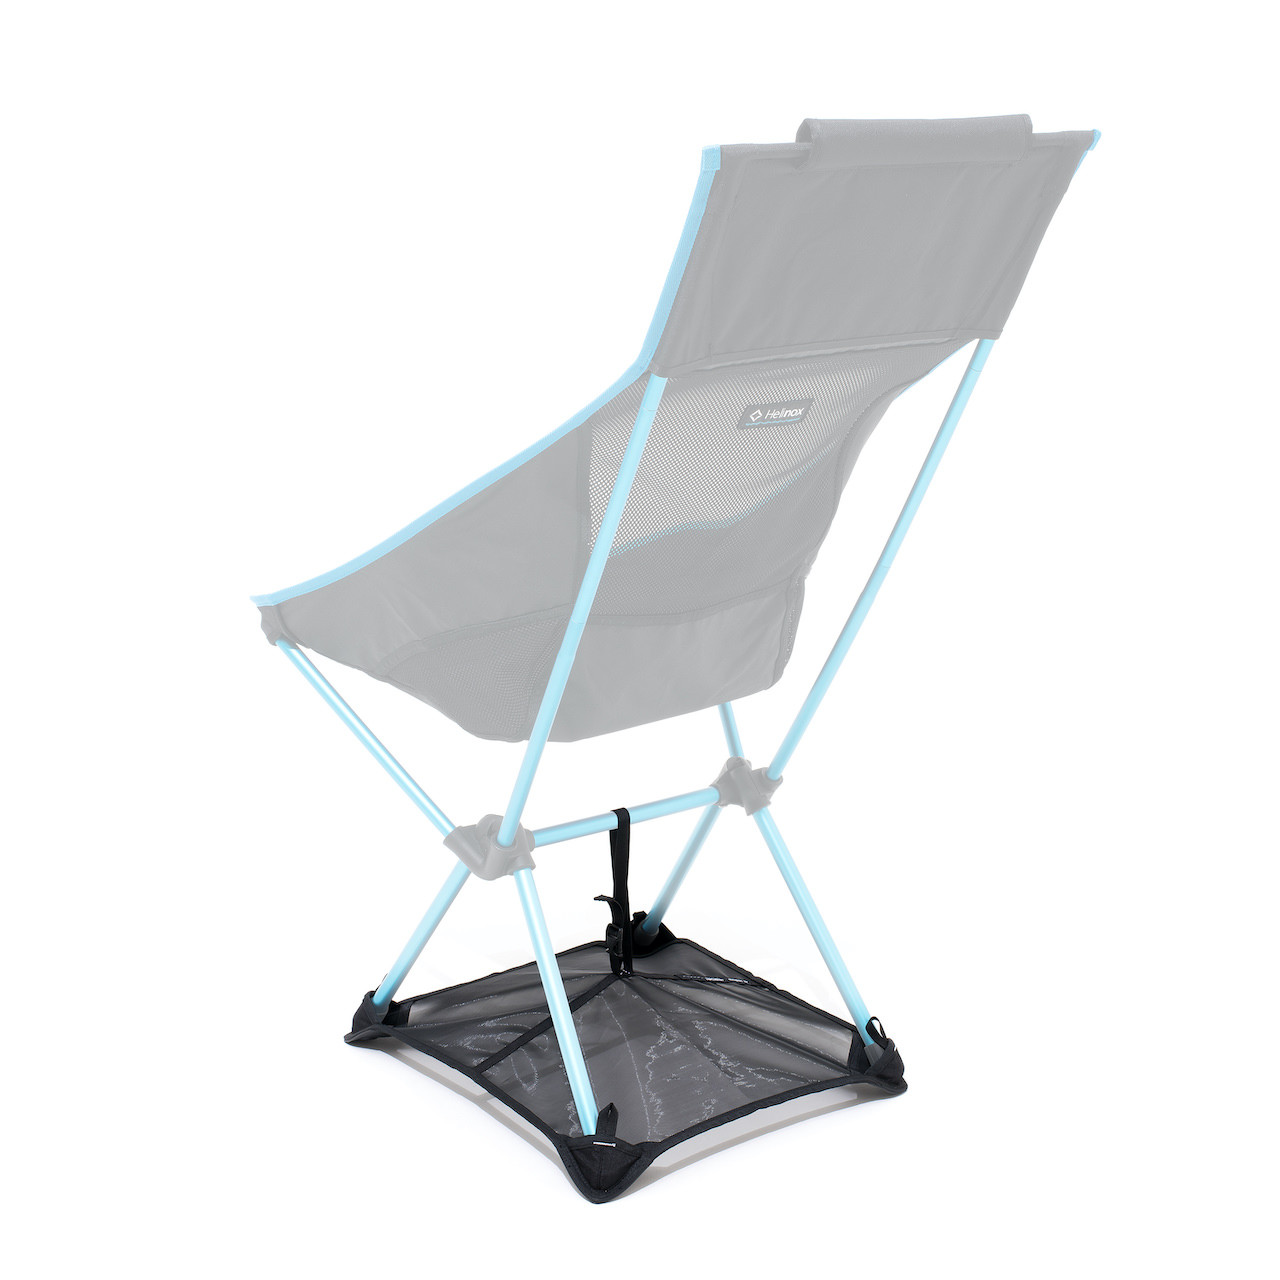 Helinox-2020-Ground-Sheet-Sunset-Chair-1